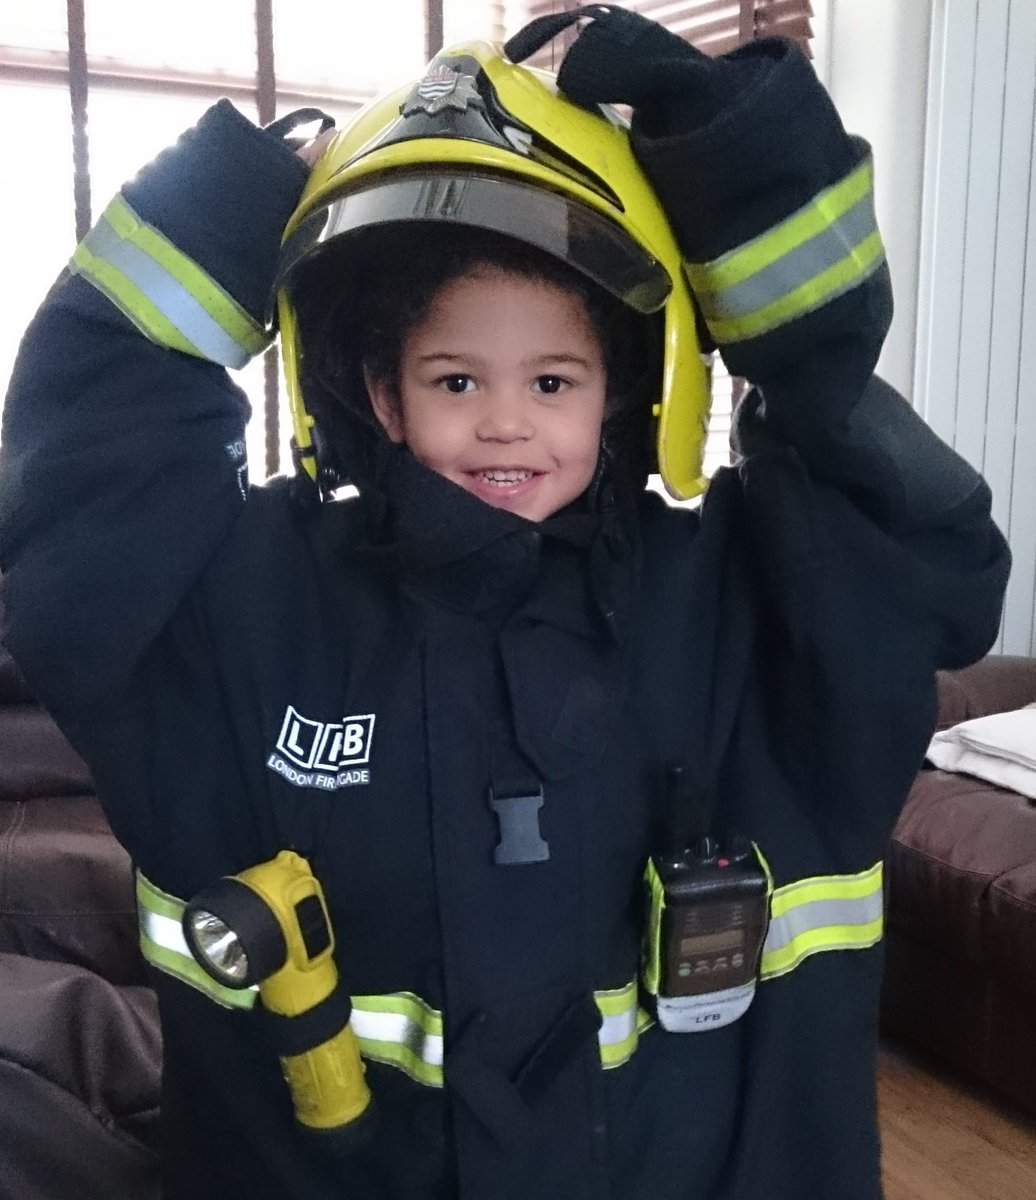 Urgent appeal for mixed raced bone marrow donors to help save firefighter's son #Match4Tommy https://t.co/1IvWaaTsWE https://t.co/M19PJHC7a6